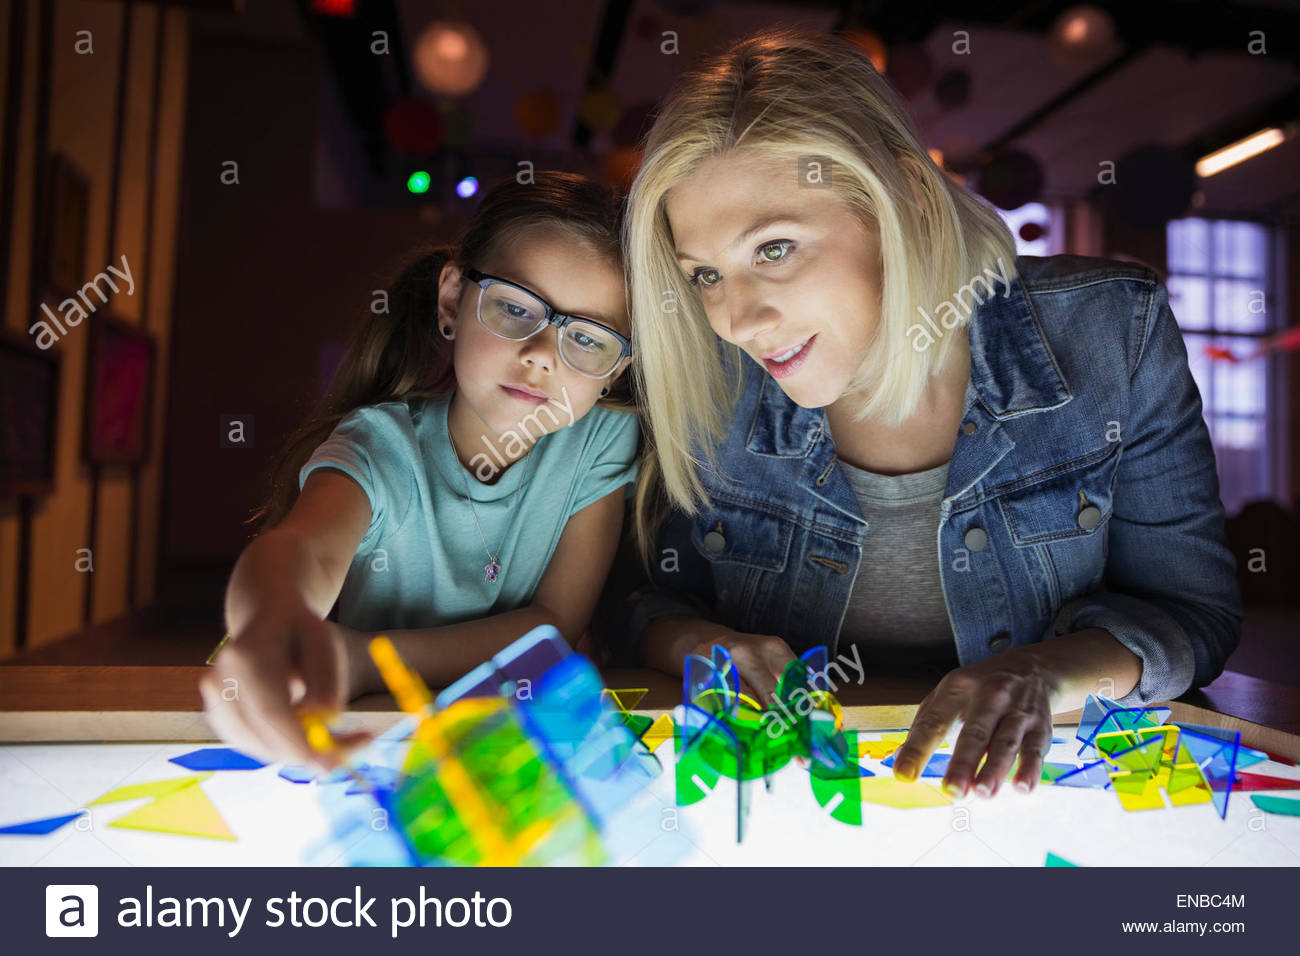 Mother daughter assembling geometric shapes at science center - Stock Image